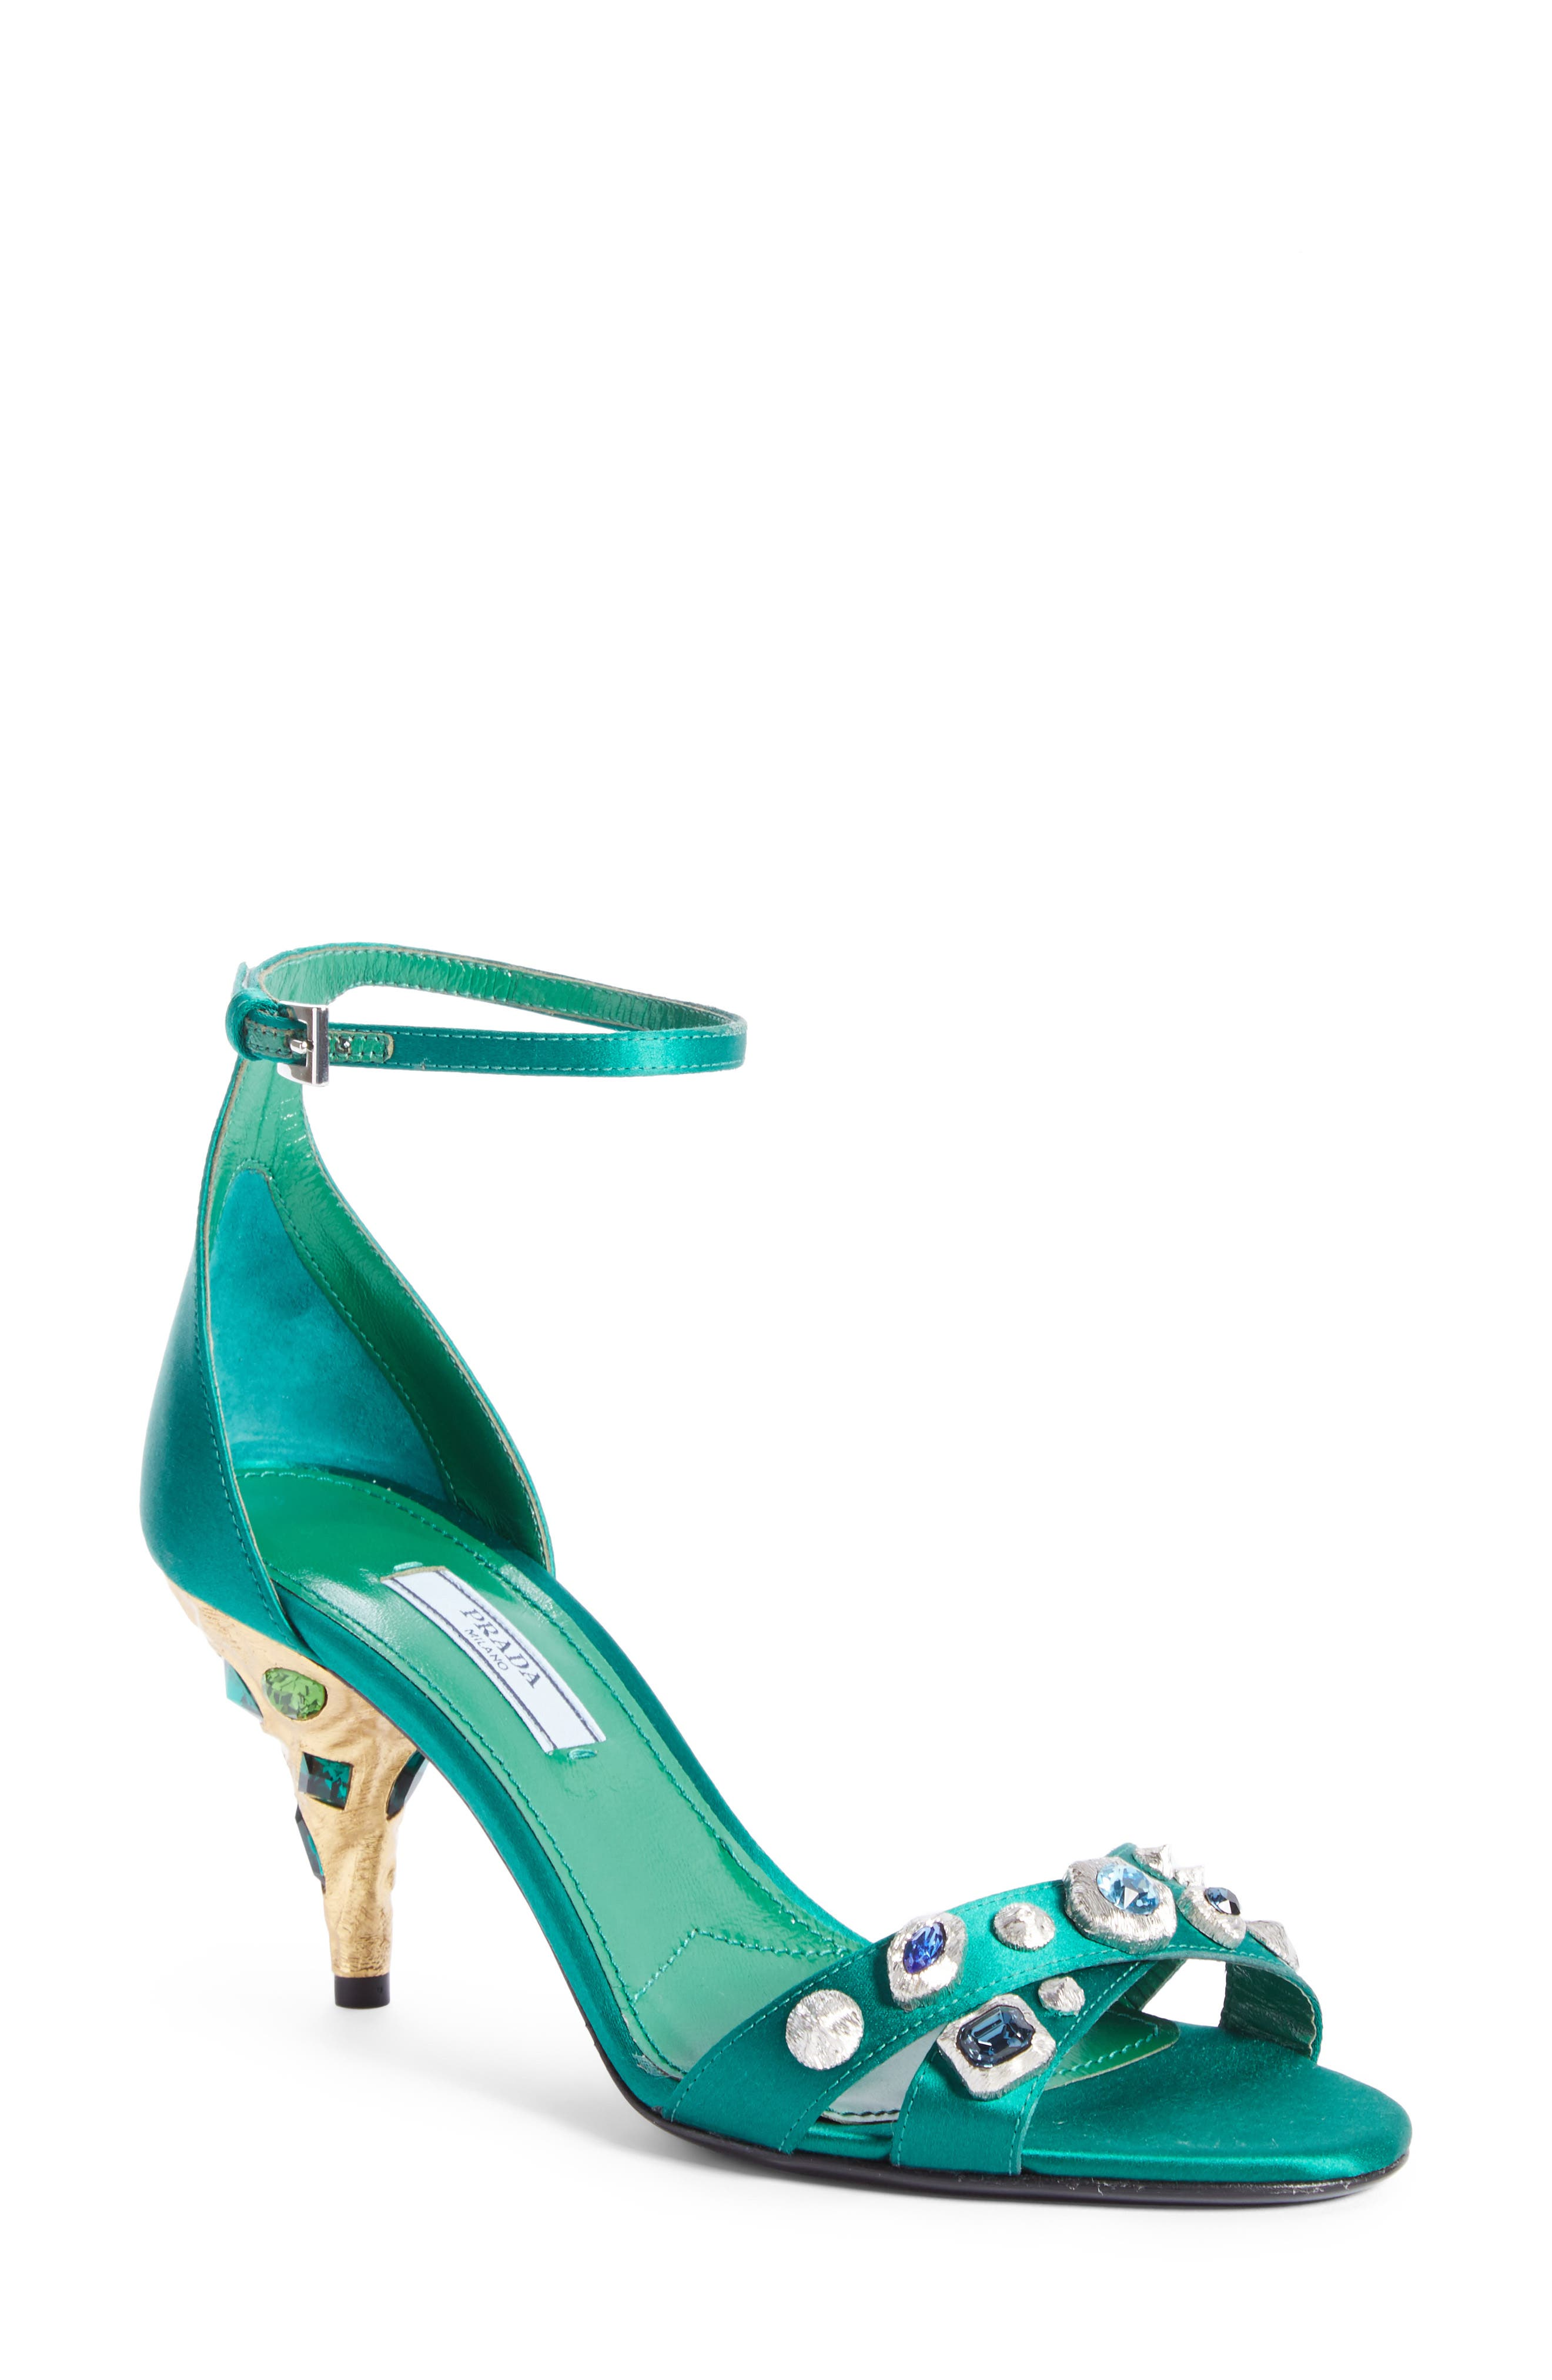 Jewel Ankle Strap Sandal,                             Main thumbnail 1, color,                             301